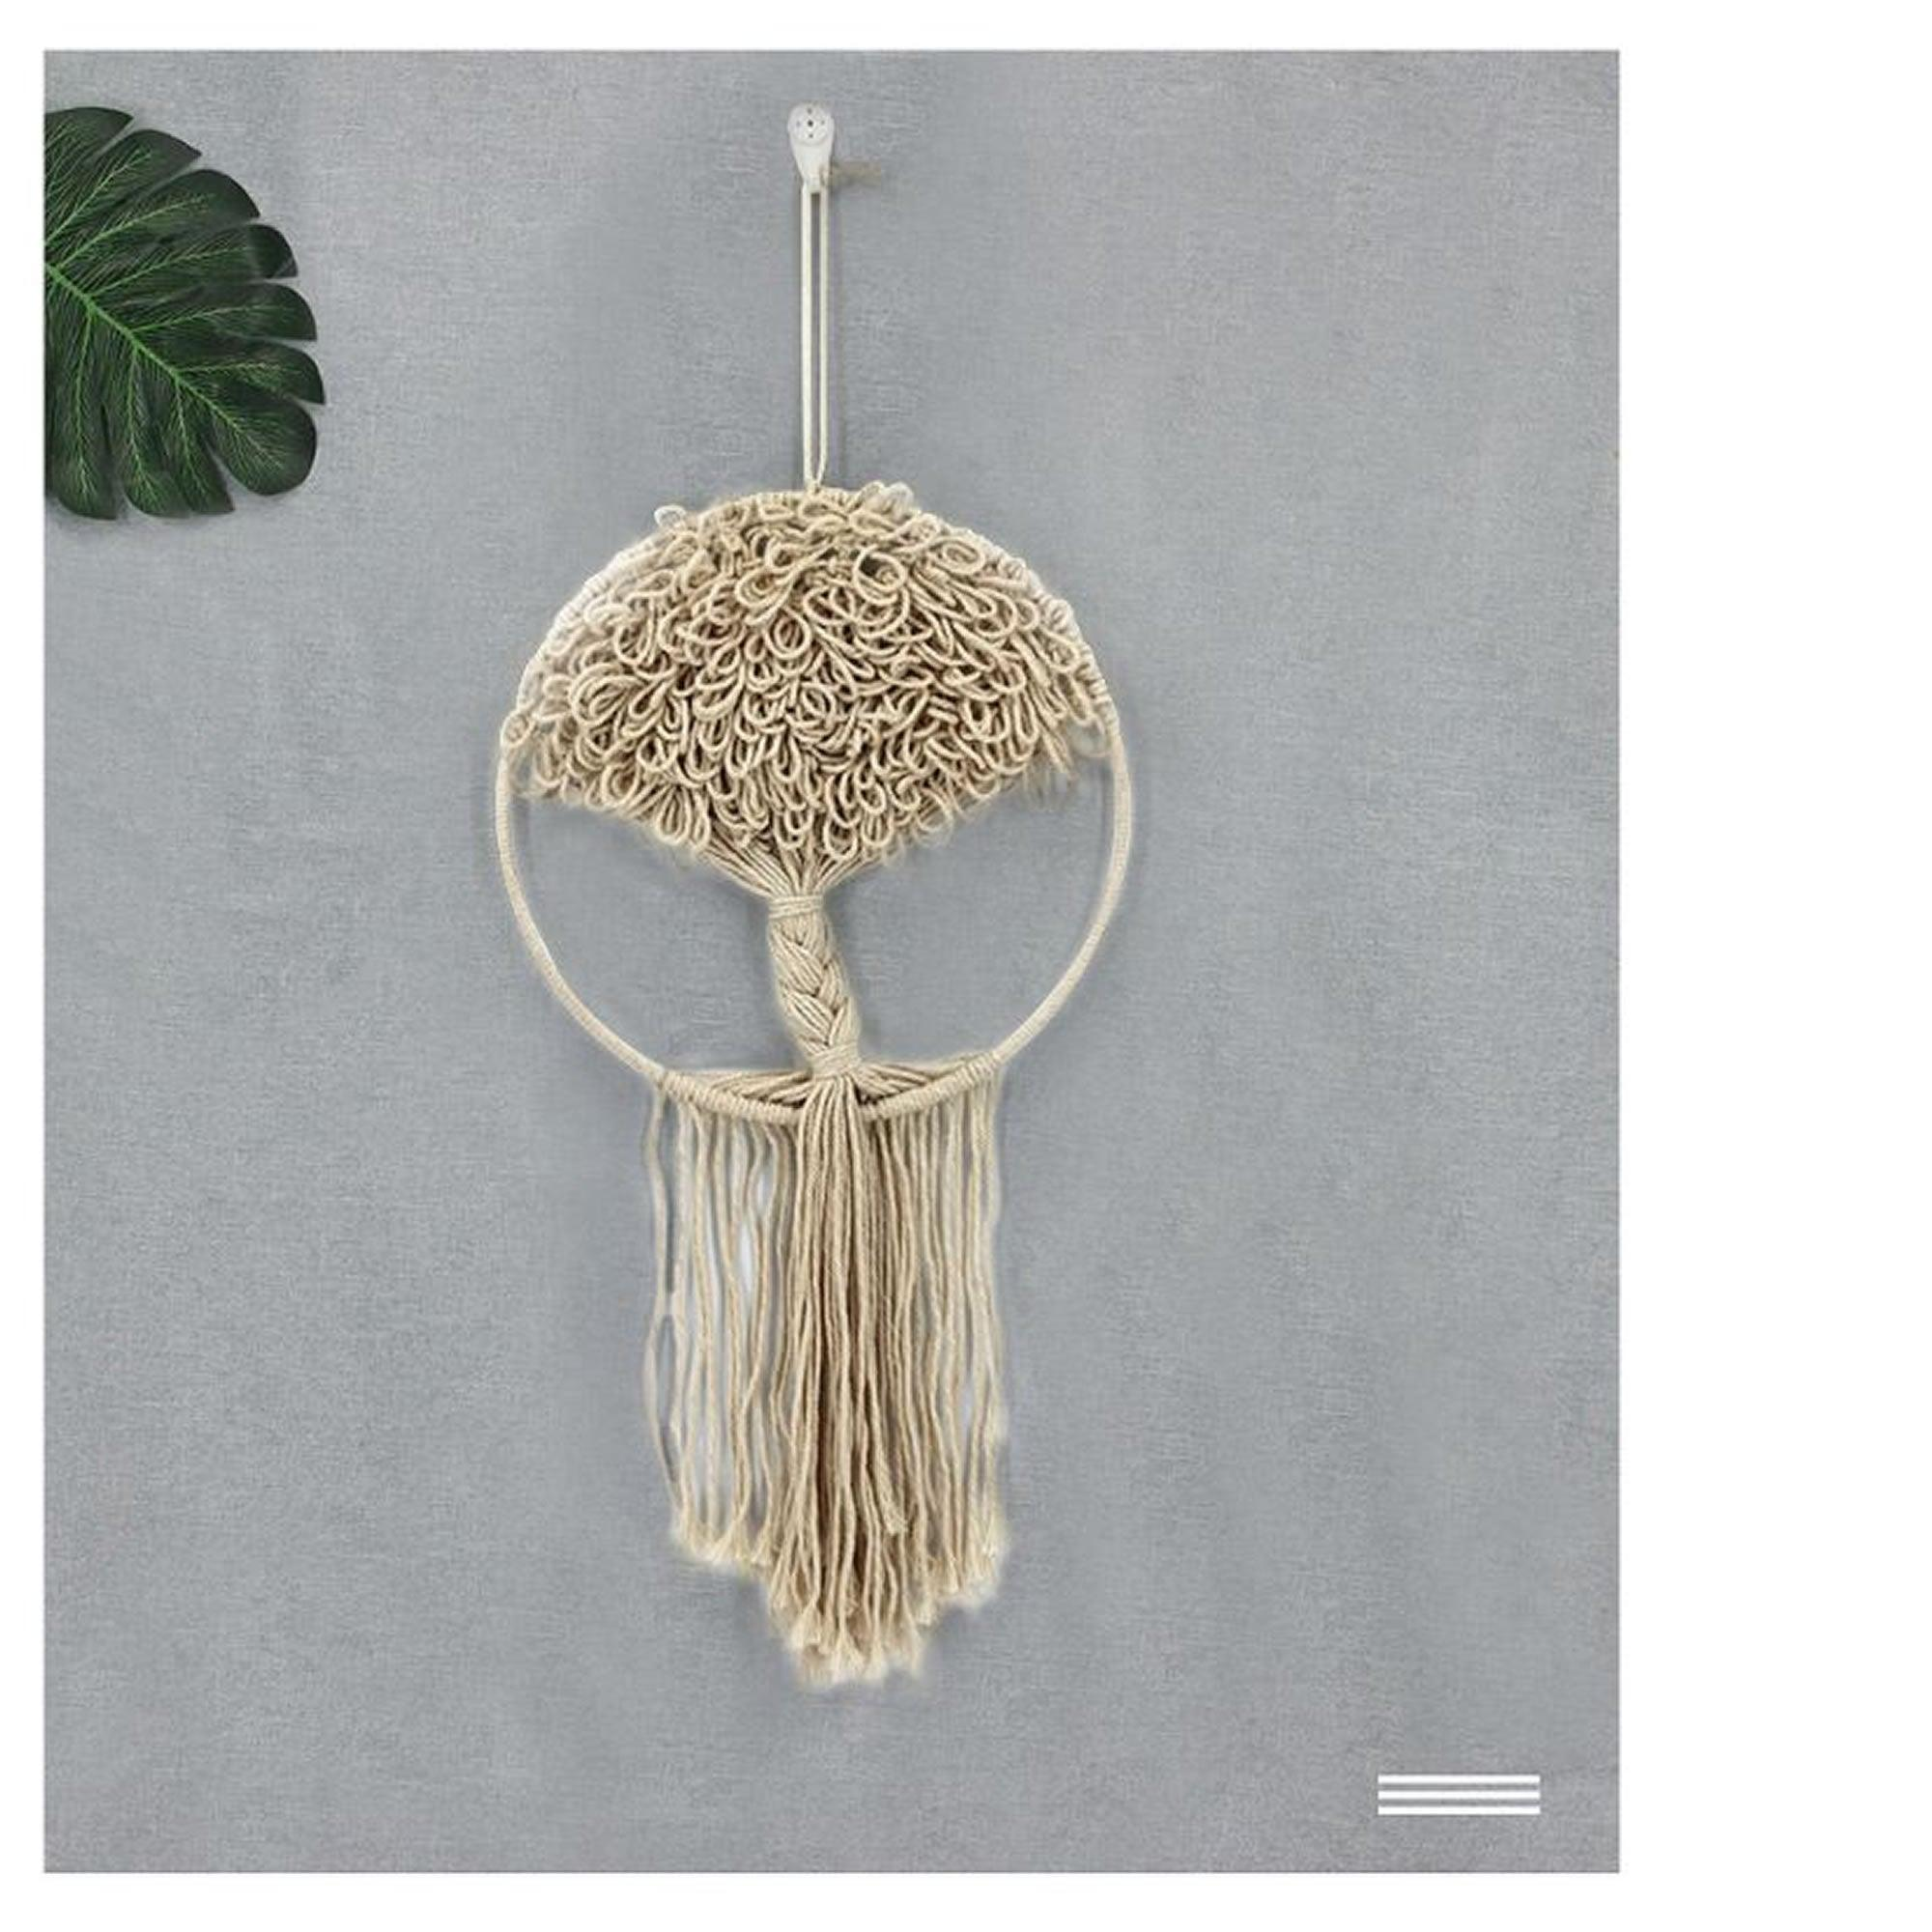 Bohemian Style Handmade Decorative Hanging Macramé Dream Catcher: Tree of Life